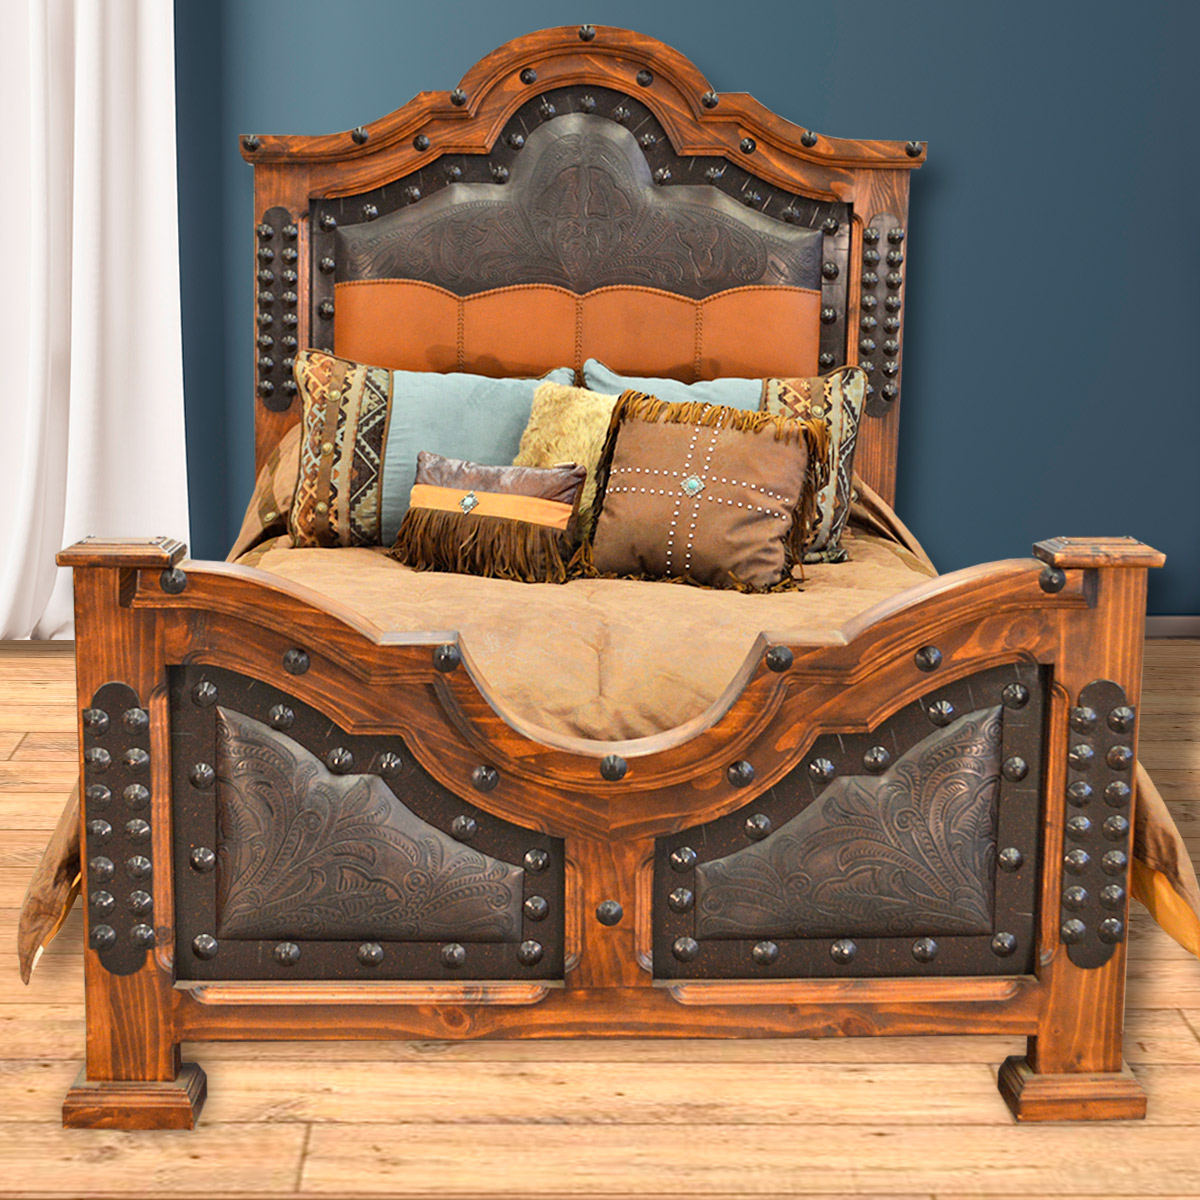 Kensington Tooled Leather Bed - Queen